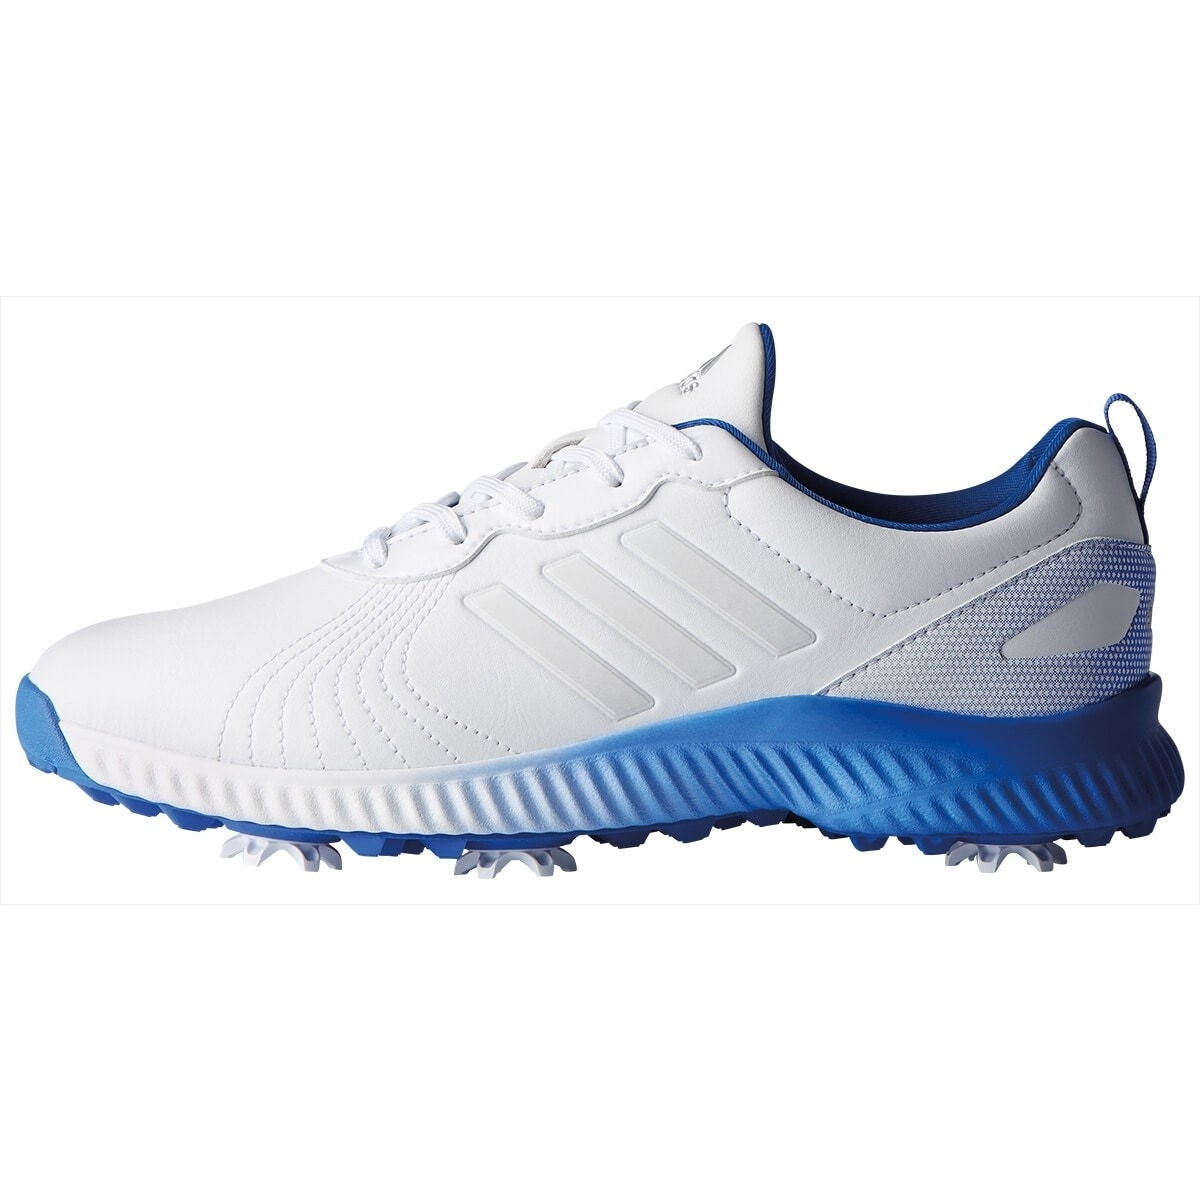 8fb99c5283d52 Shop New Adidas Women s Response Bounce Cloud White Cloud White Hi-Res Blue  Golf Shoes F33665 - Free Shipping Today - Overstock - 26234265